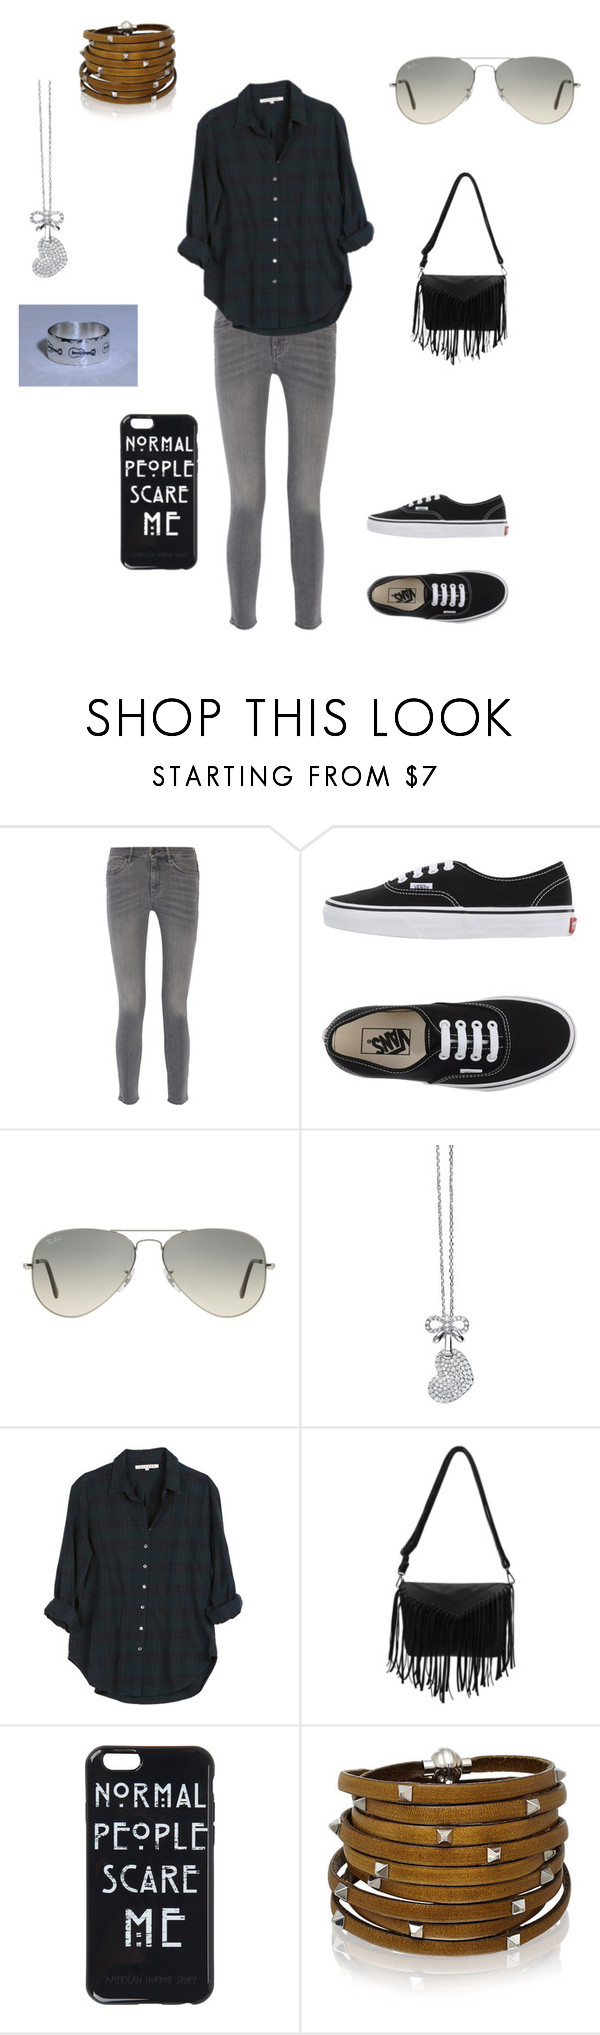 """""""Saturday"""" by glendagranados ❤ liked on Polyvore featuring MiH Jeans, Vans, Ray-Ban, Lipsy, Xirena and Sif Jakobs Jewellery"""